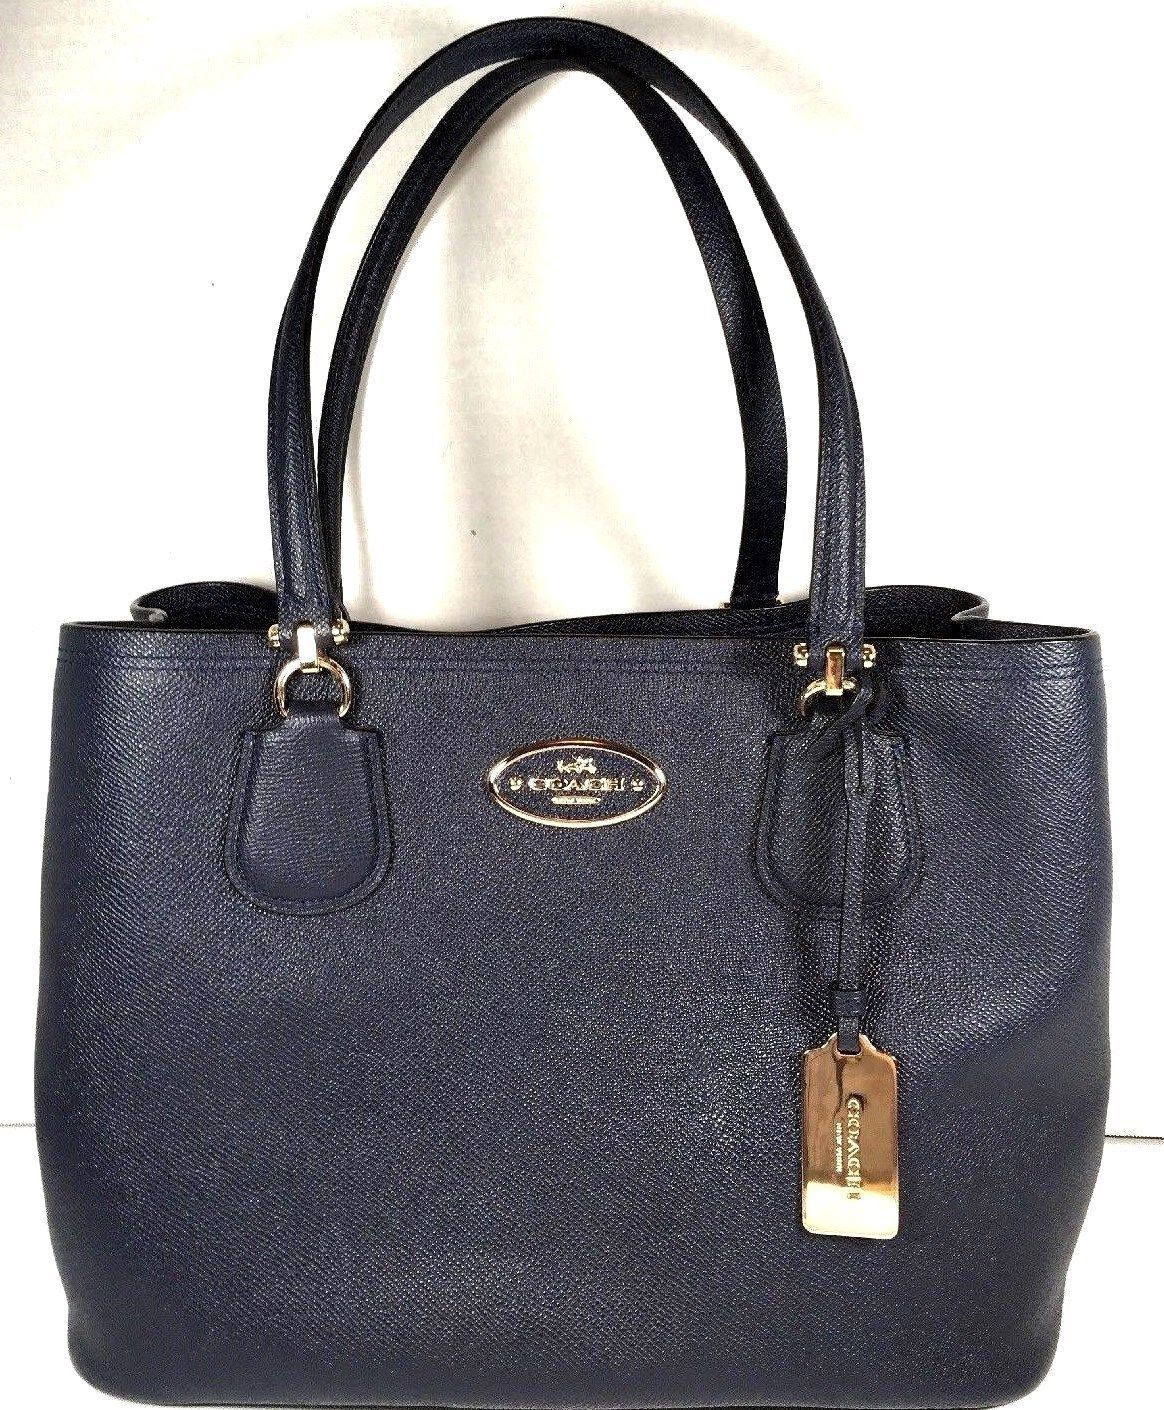 Coach Kitt Carryall Tote Navy Blue Crossgrain Leather Gold Tone HW with Dustbag